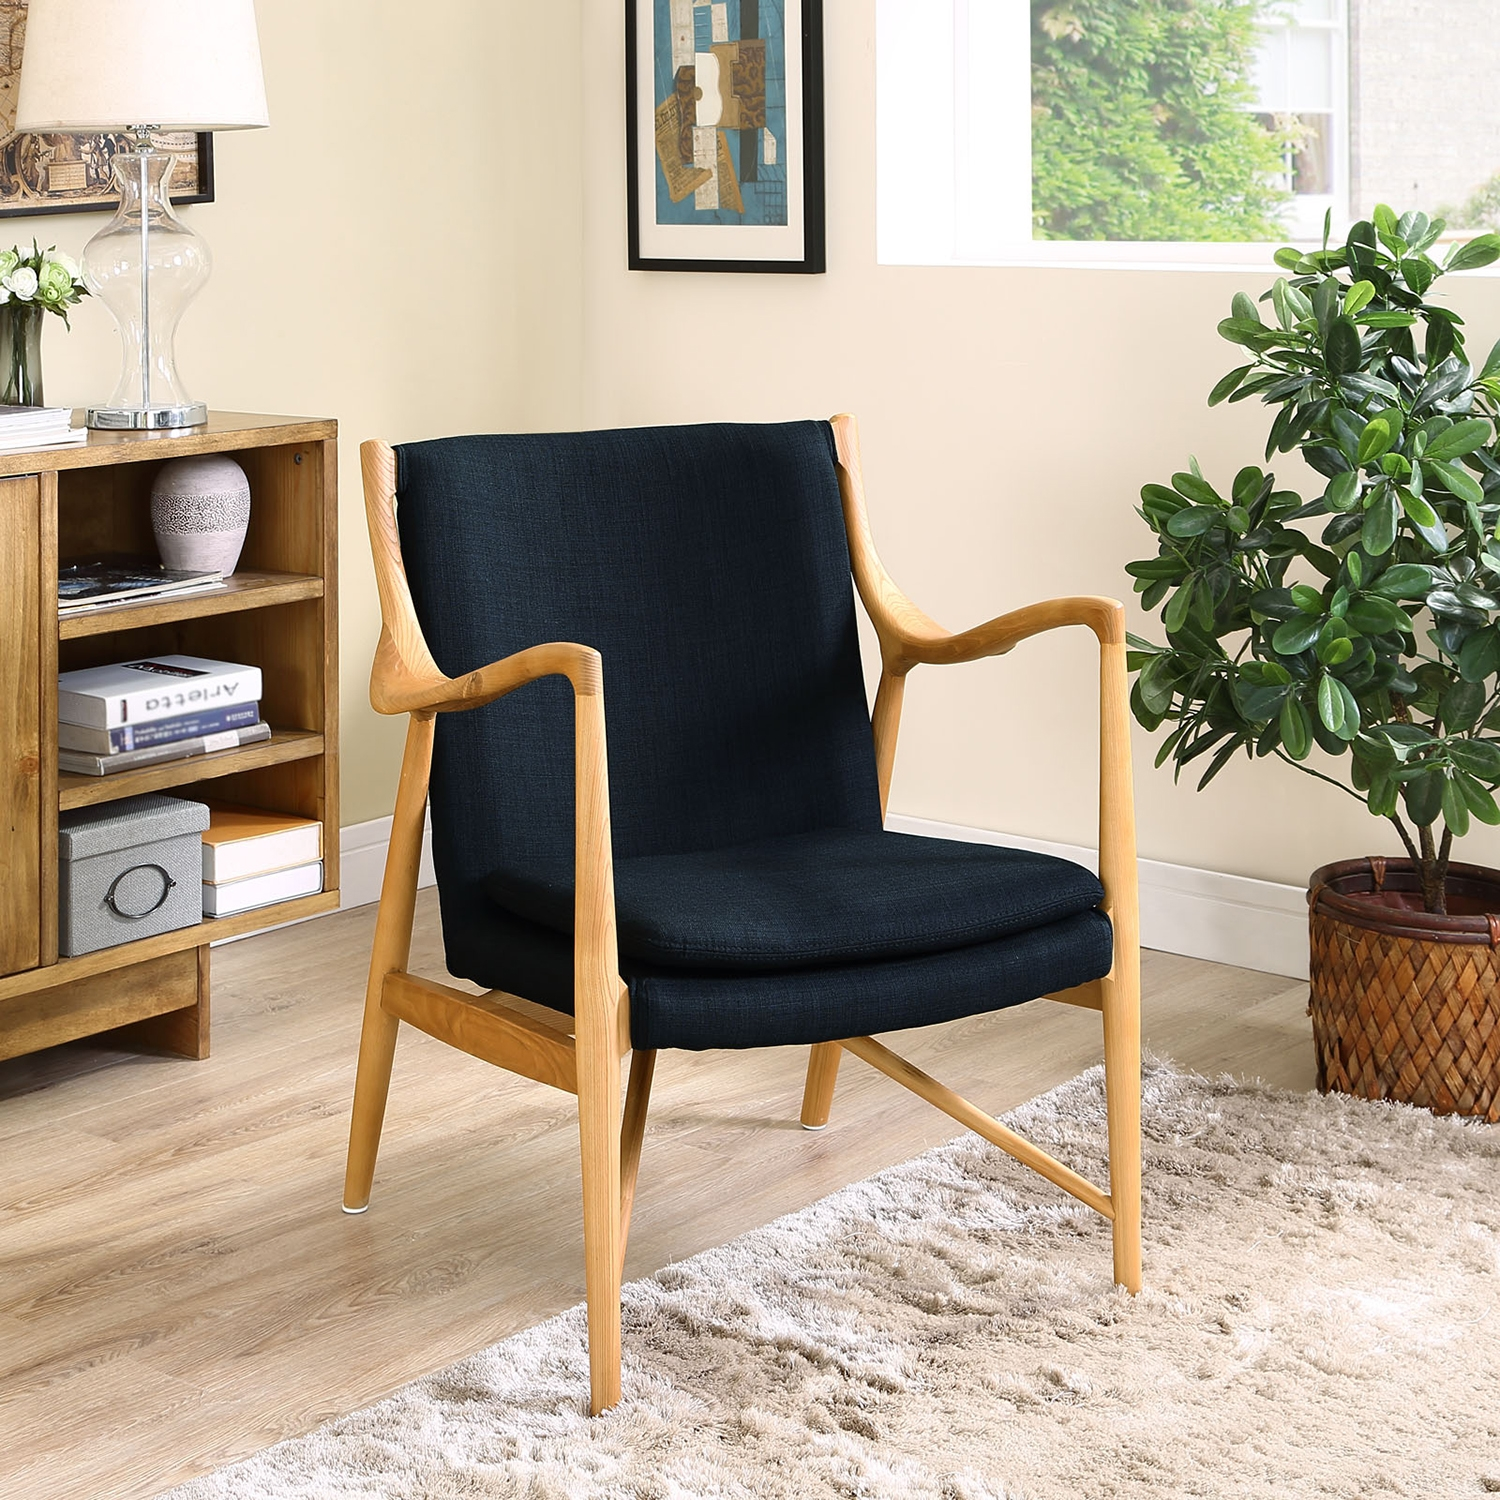 Makeshift Upholstered Lounge Chair - EEI-1440